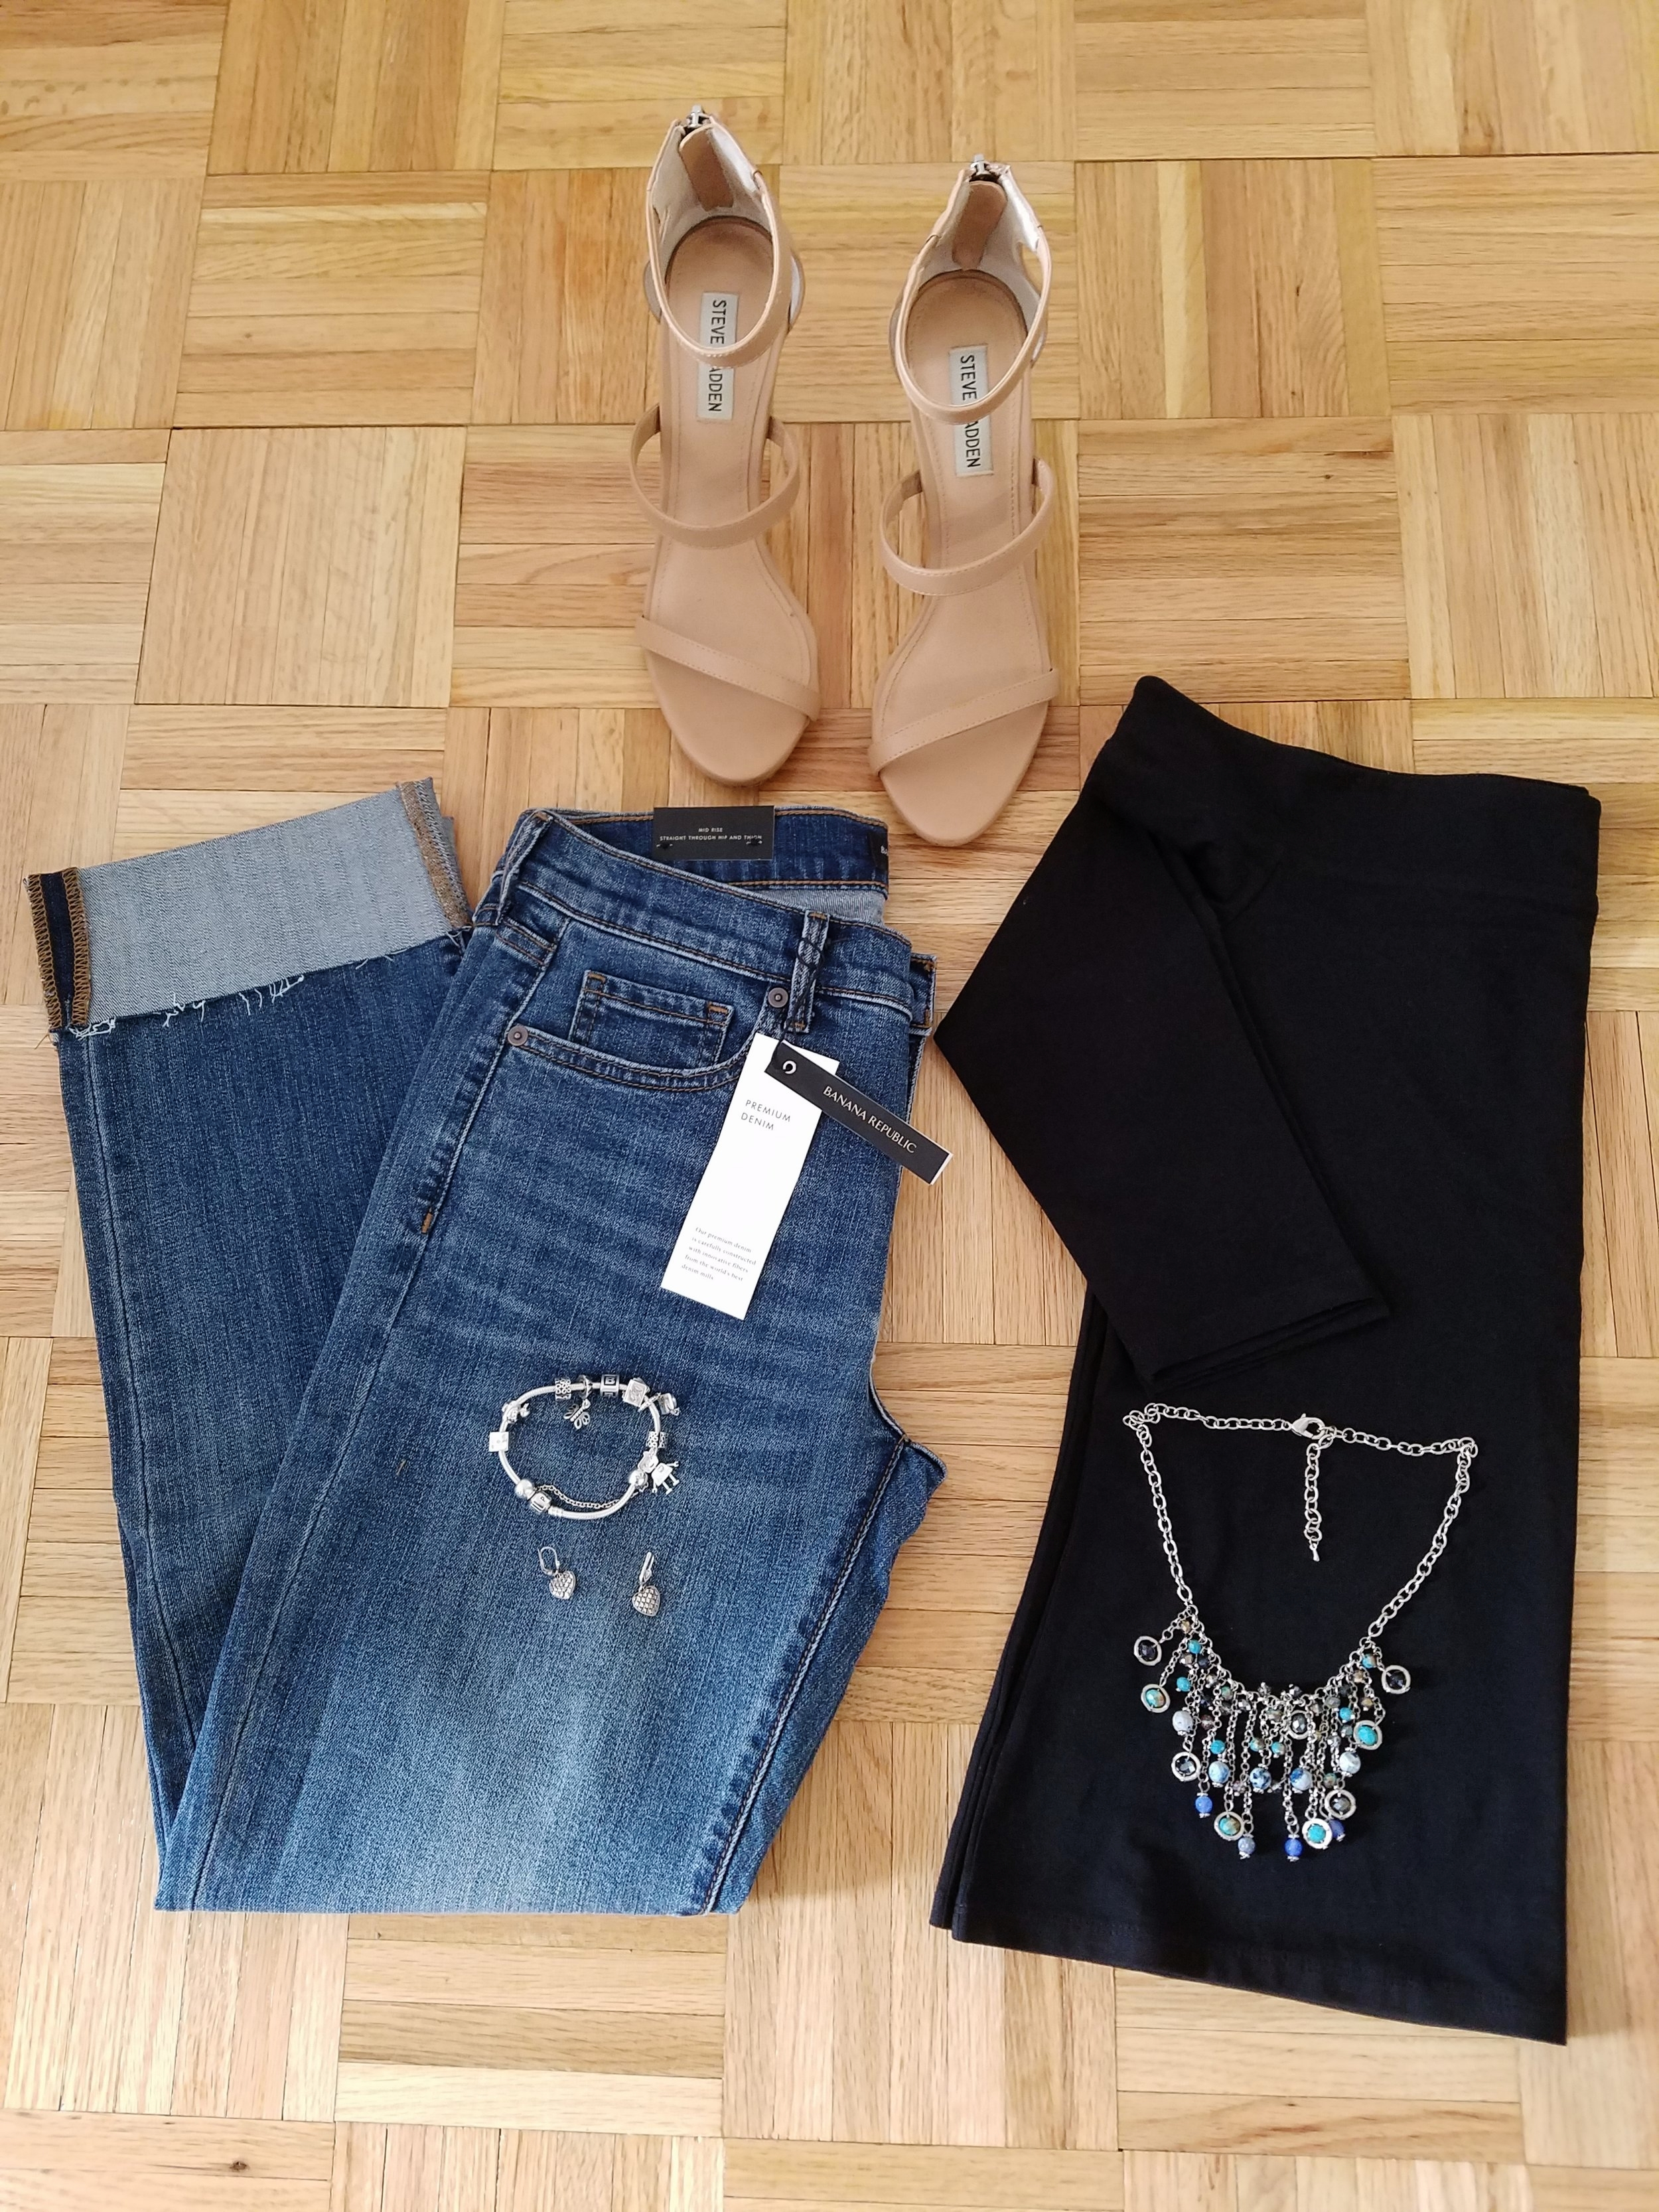 Black Off the Shoulder Top with Cuffed Girlfriend Jeans Steve Madden Feelya Sandal in Nude and Some Bling.jpg